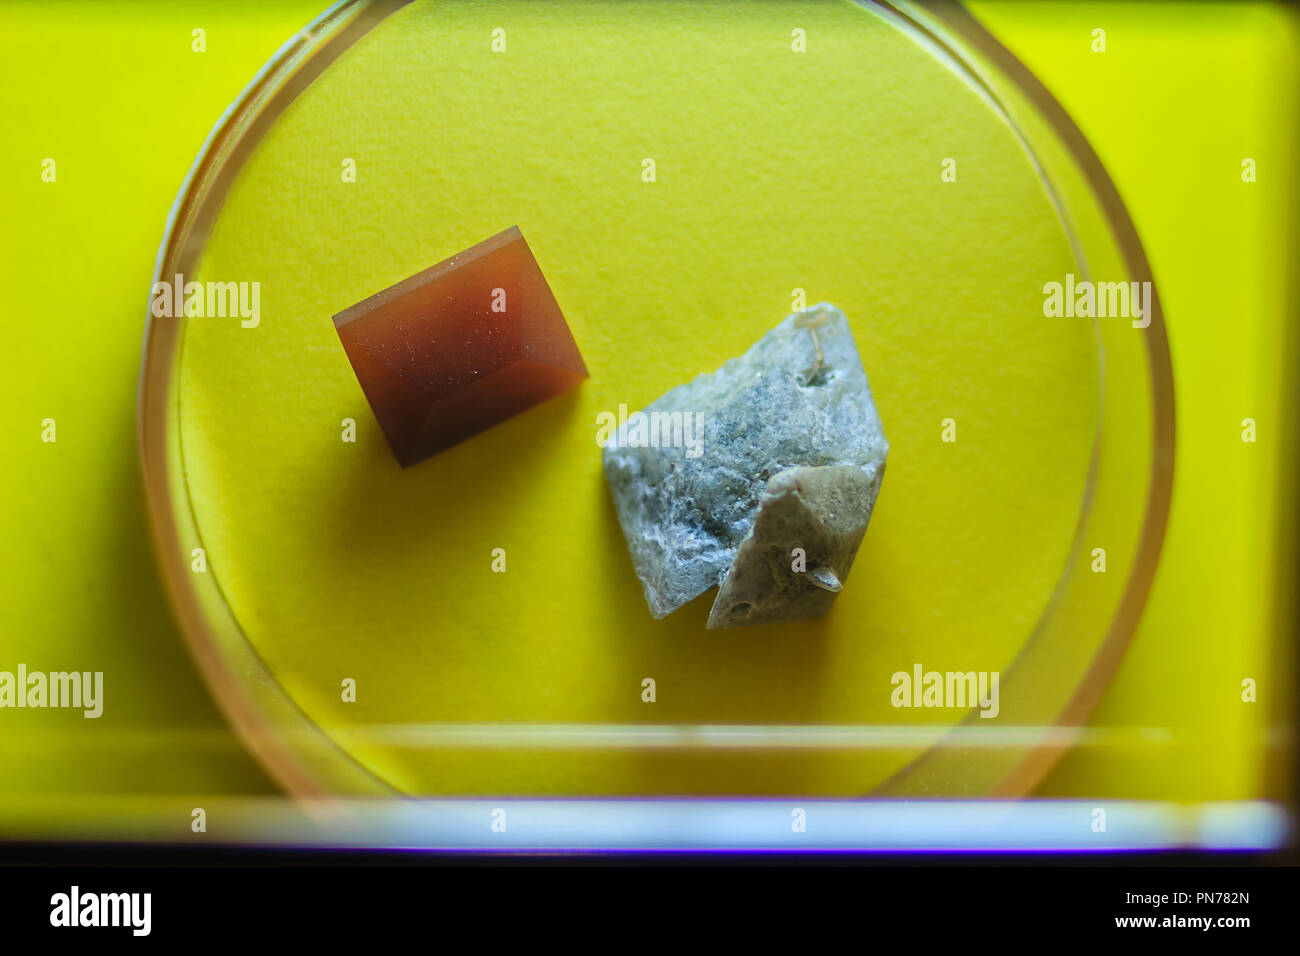 Specimen of Barite stone from mining and quarrying. Baryte or barite (BaSO4) is a mineral consisting of barium sulfate. Baryte is generally white or c - Stock Image